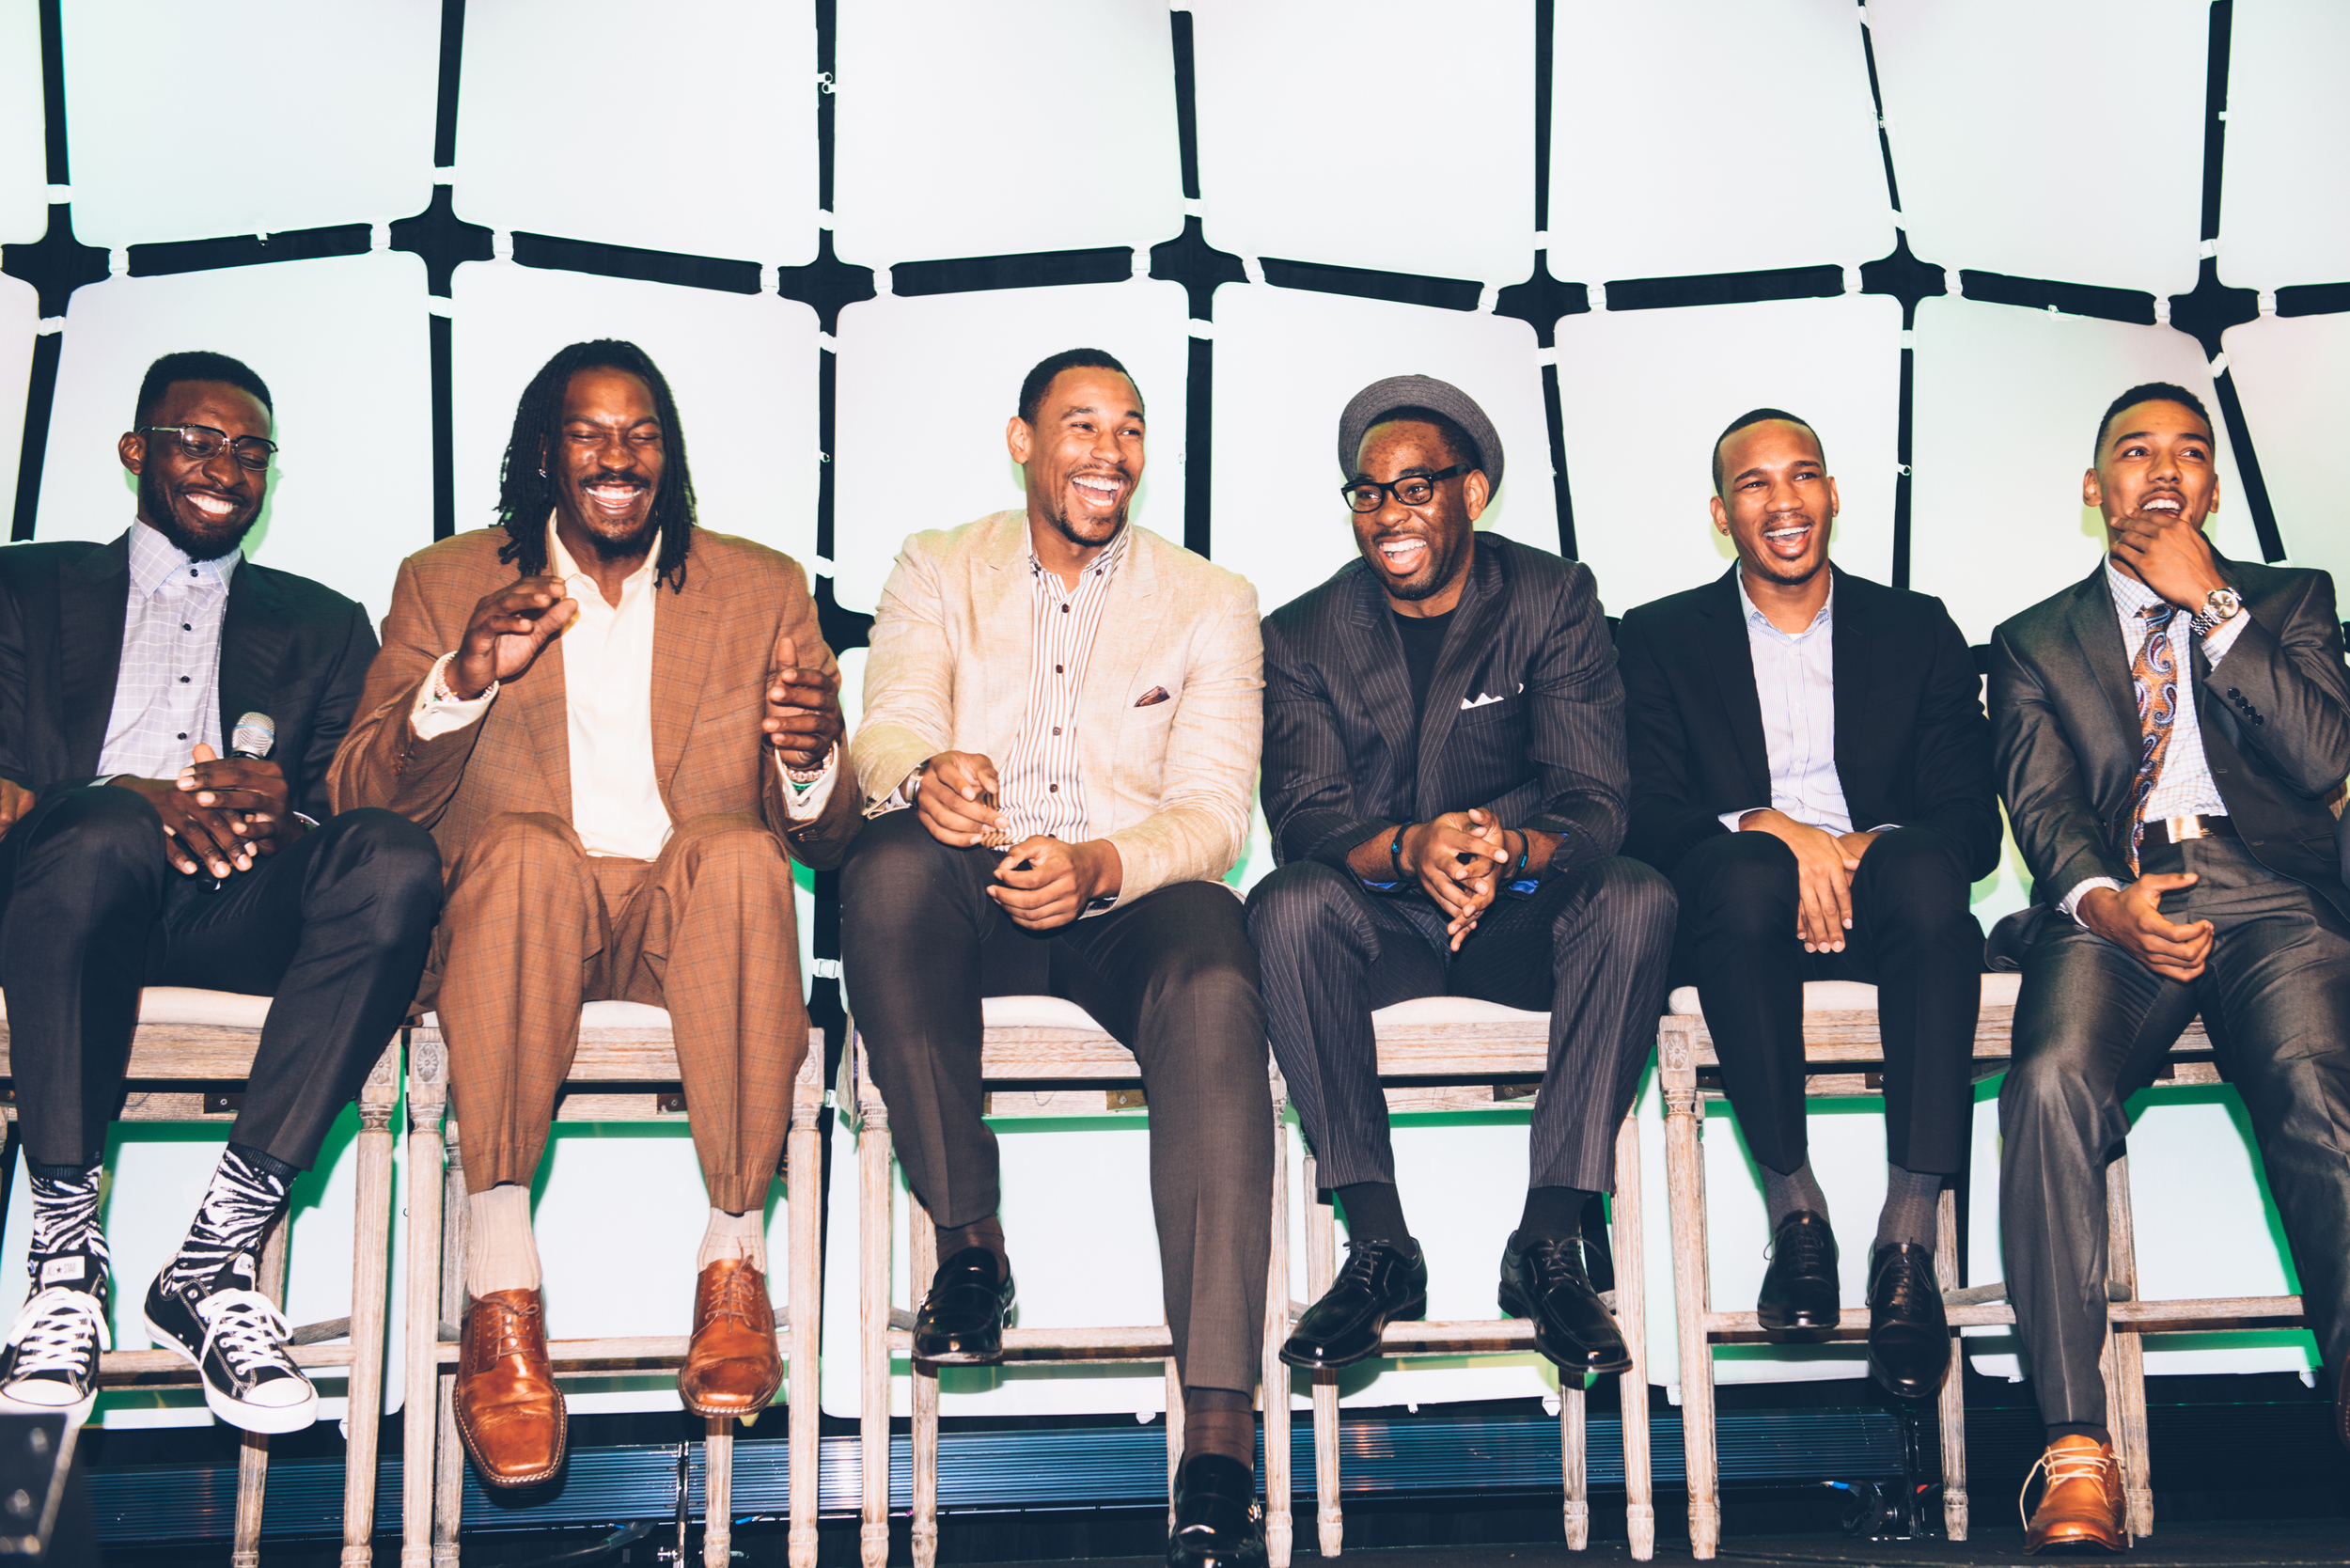 Jeff Green, Gerald Wallace, Jared Sullinger, Marcus Thornton, Avery Bradley and Phil Pressey